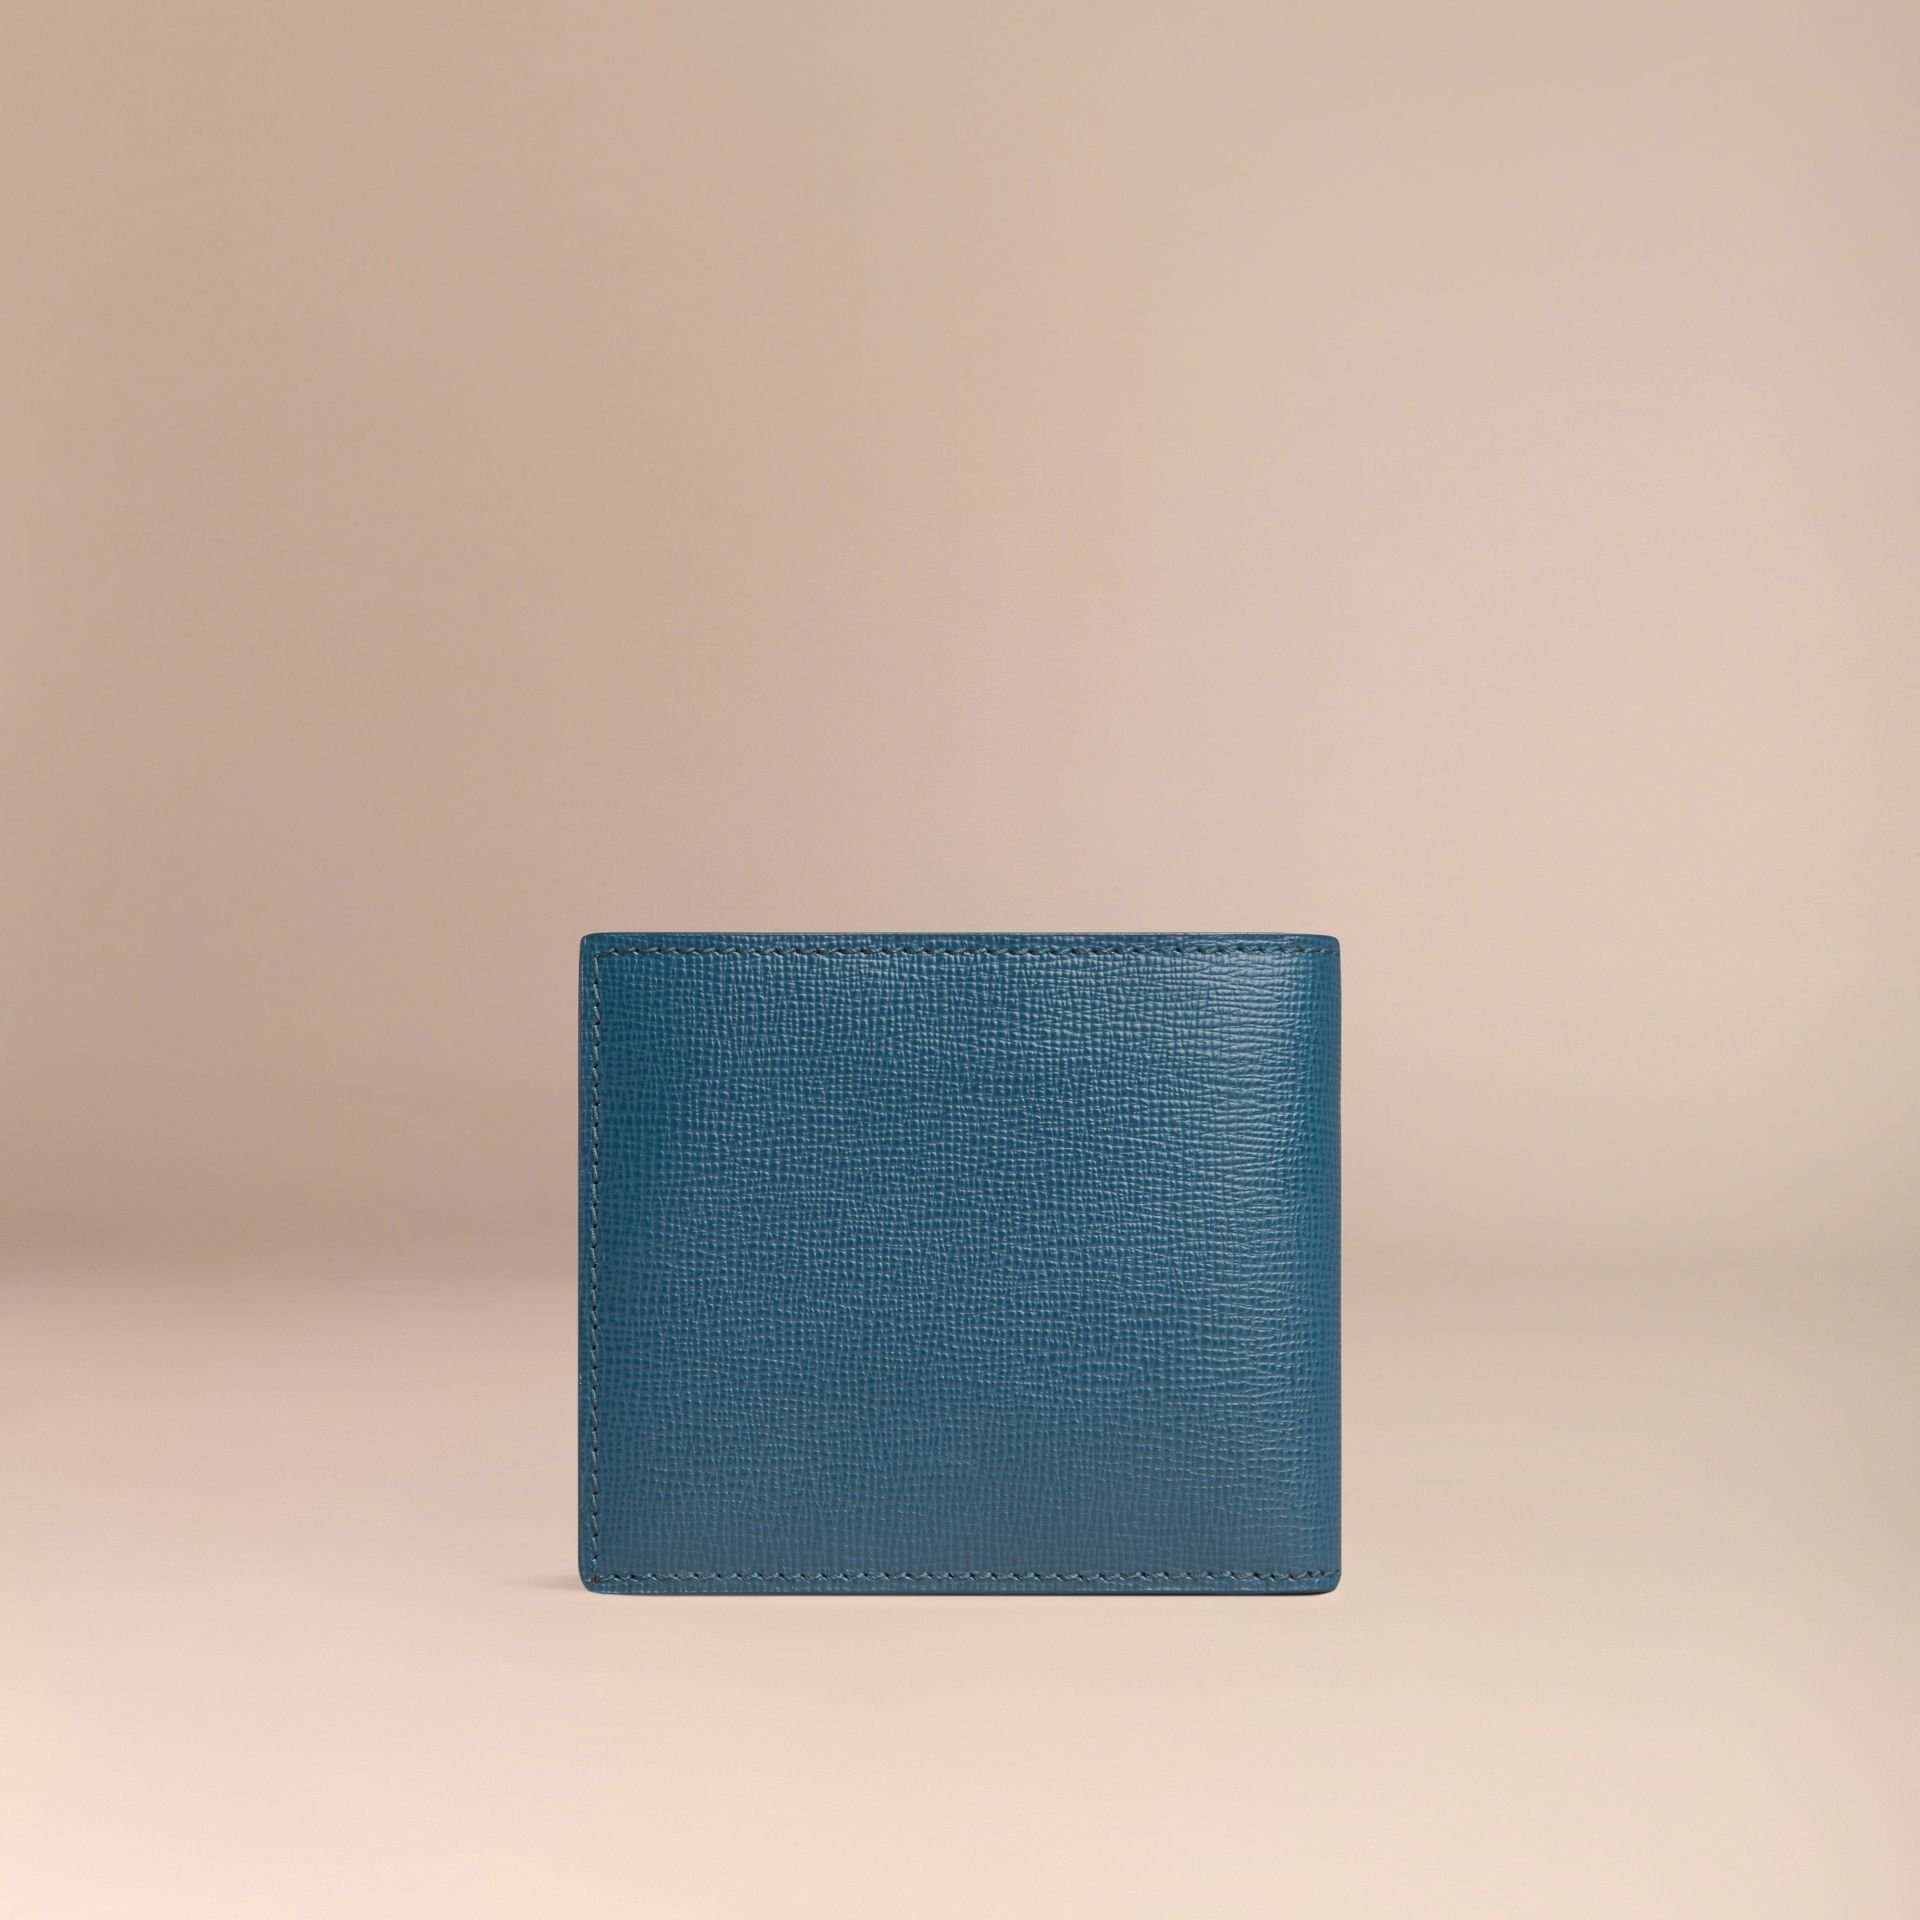 Mineral blue London Leather Folding Wallet Mineral Blue - gallery image 3